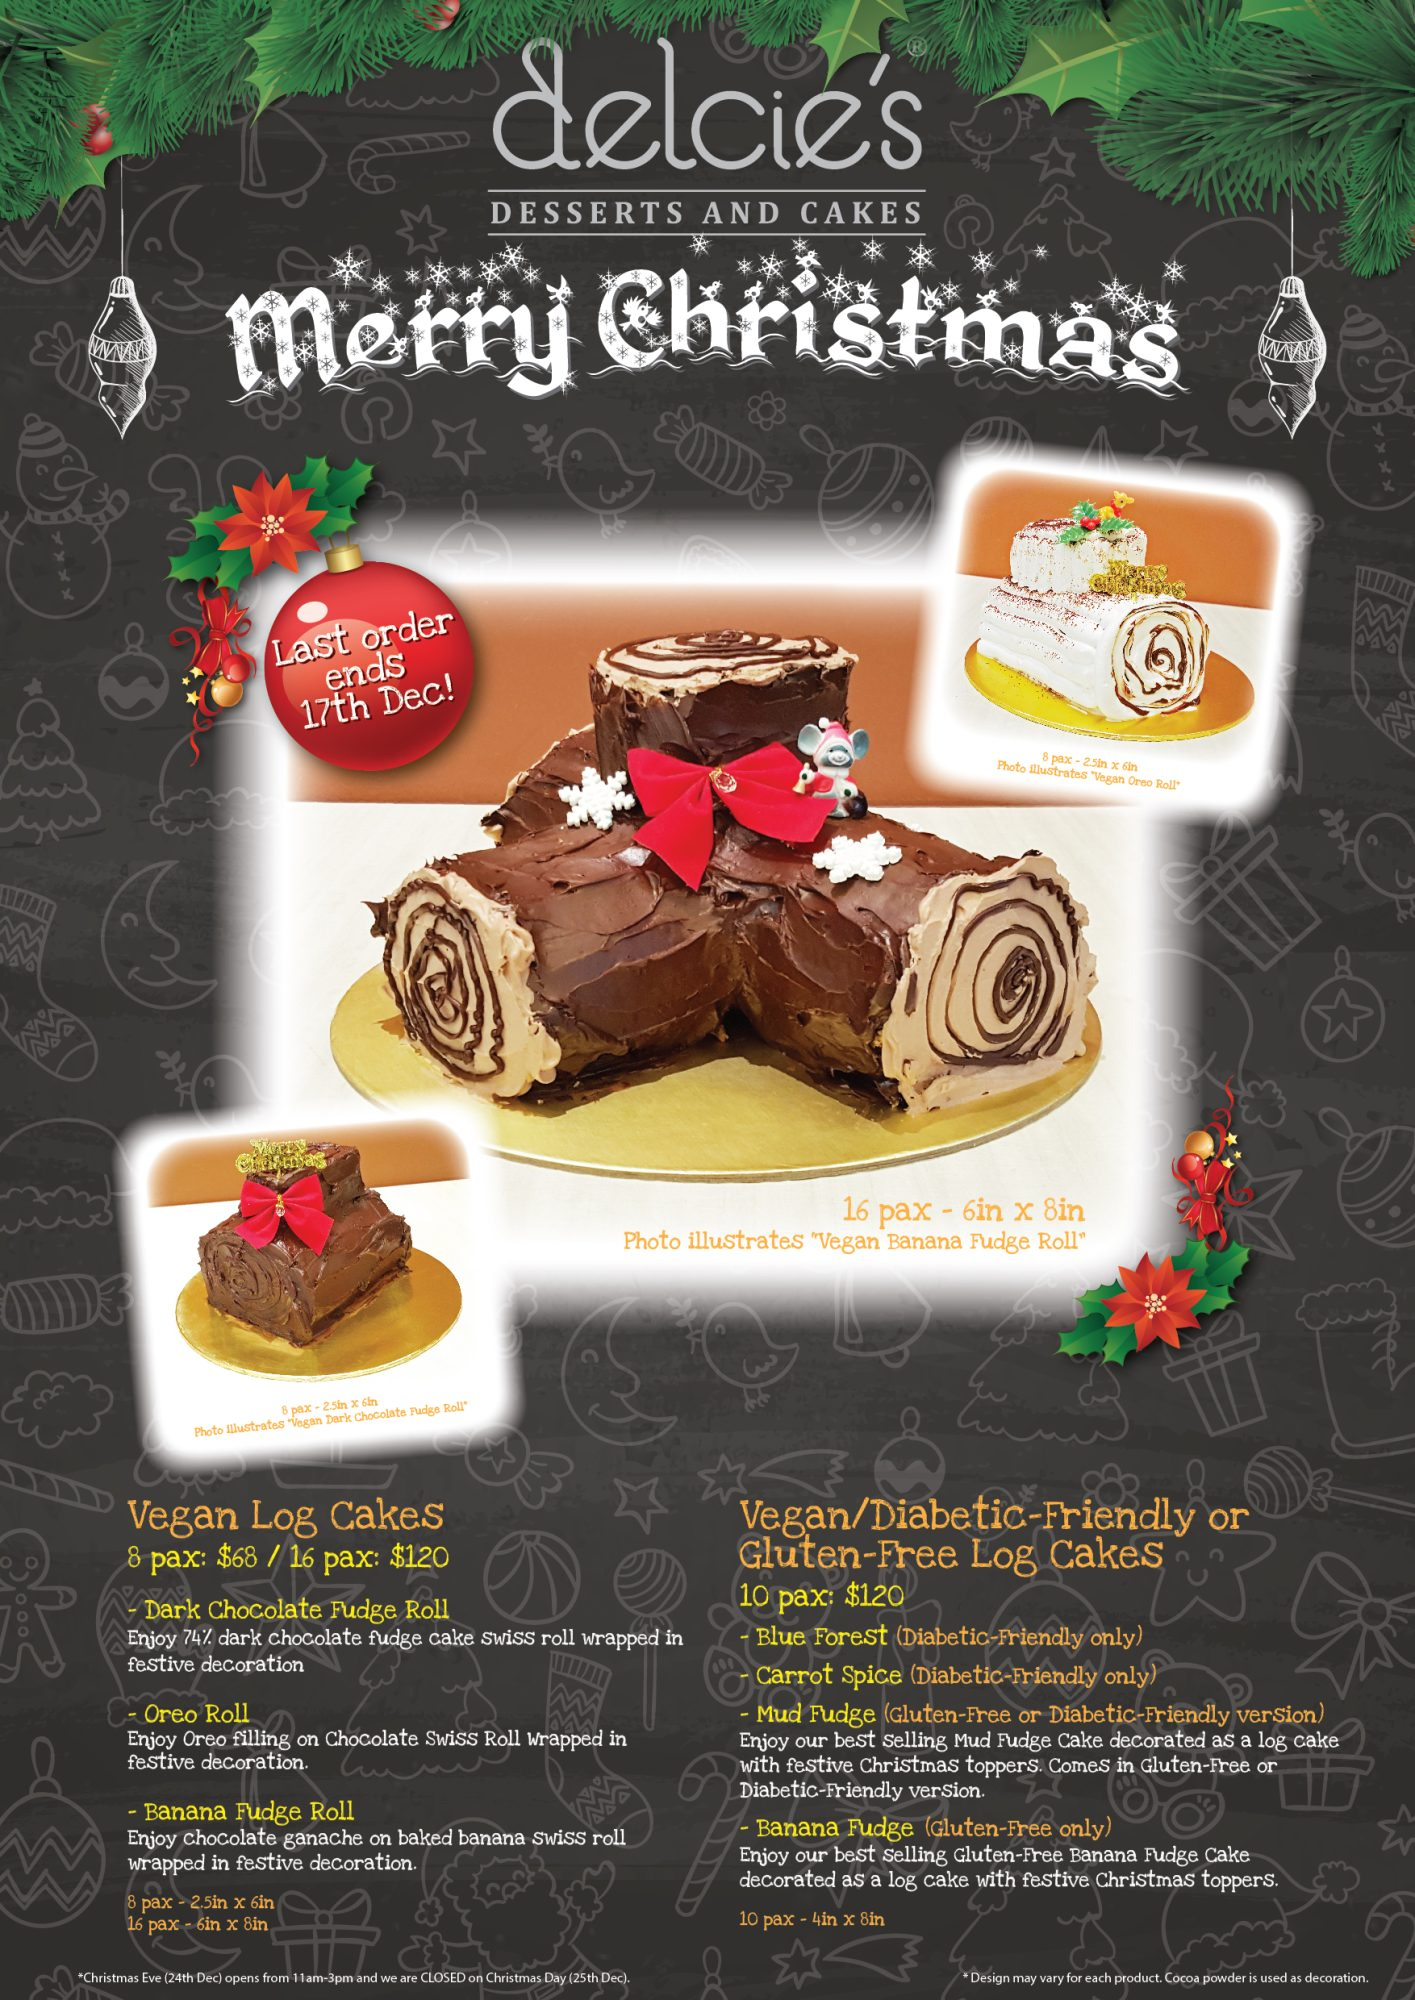 Cake Decorating Company Voucher Code : christmas   Delcies Desserts and Cakes